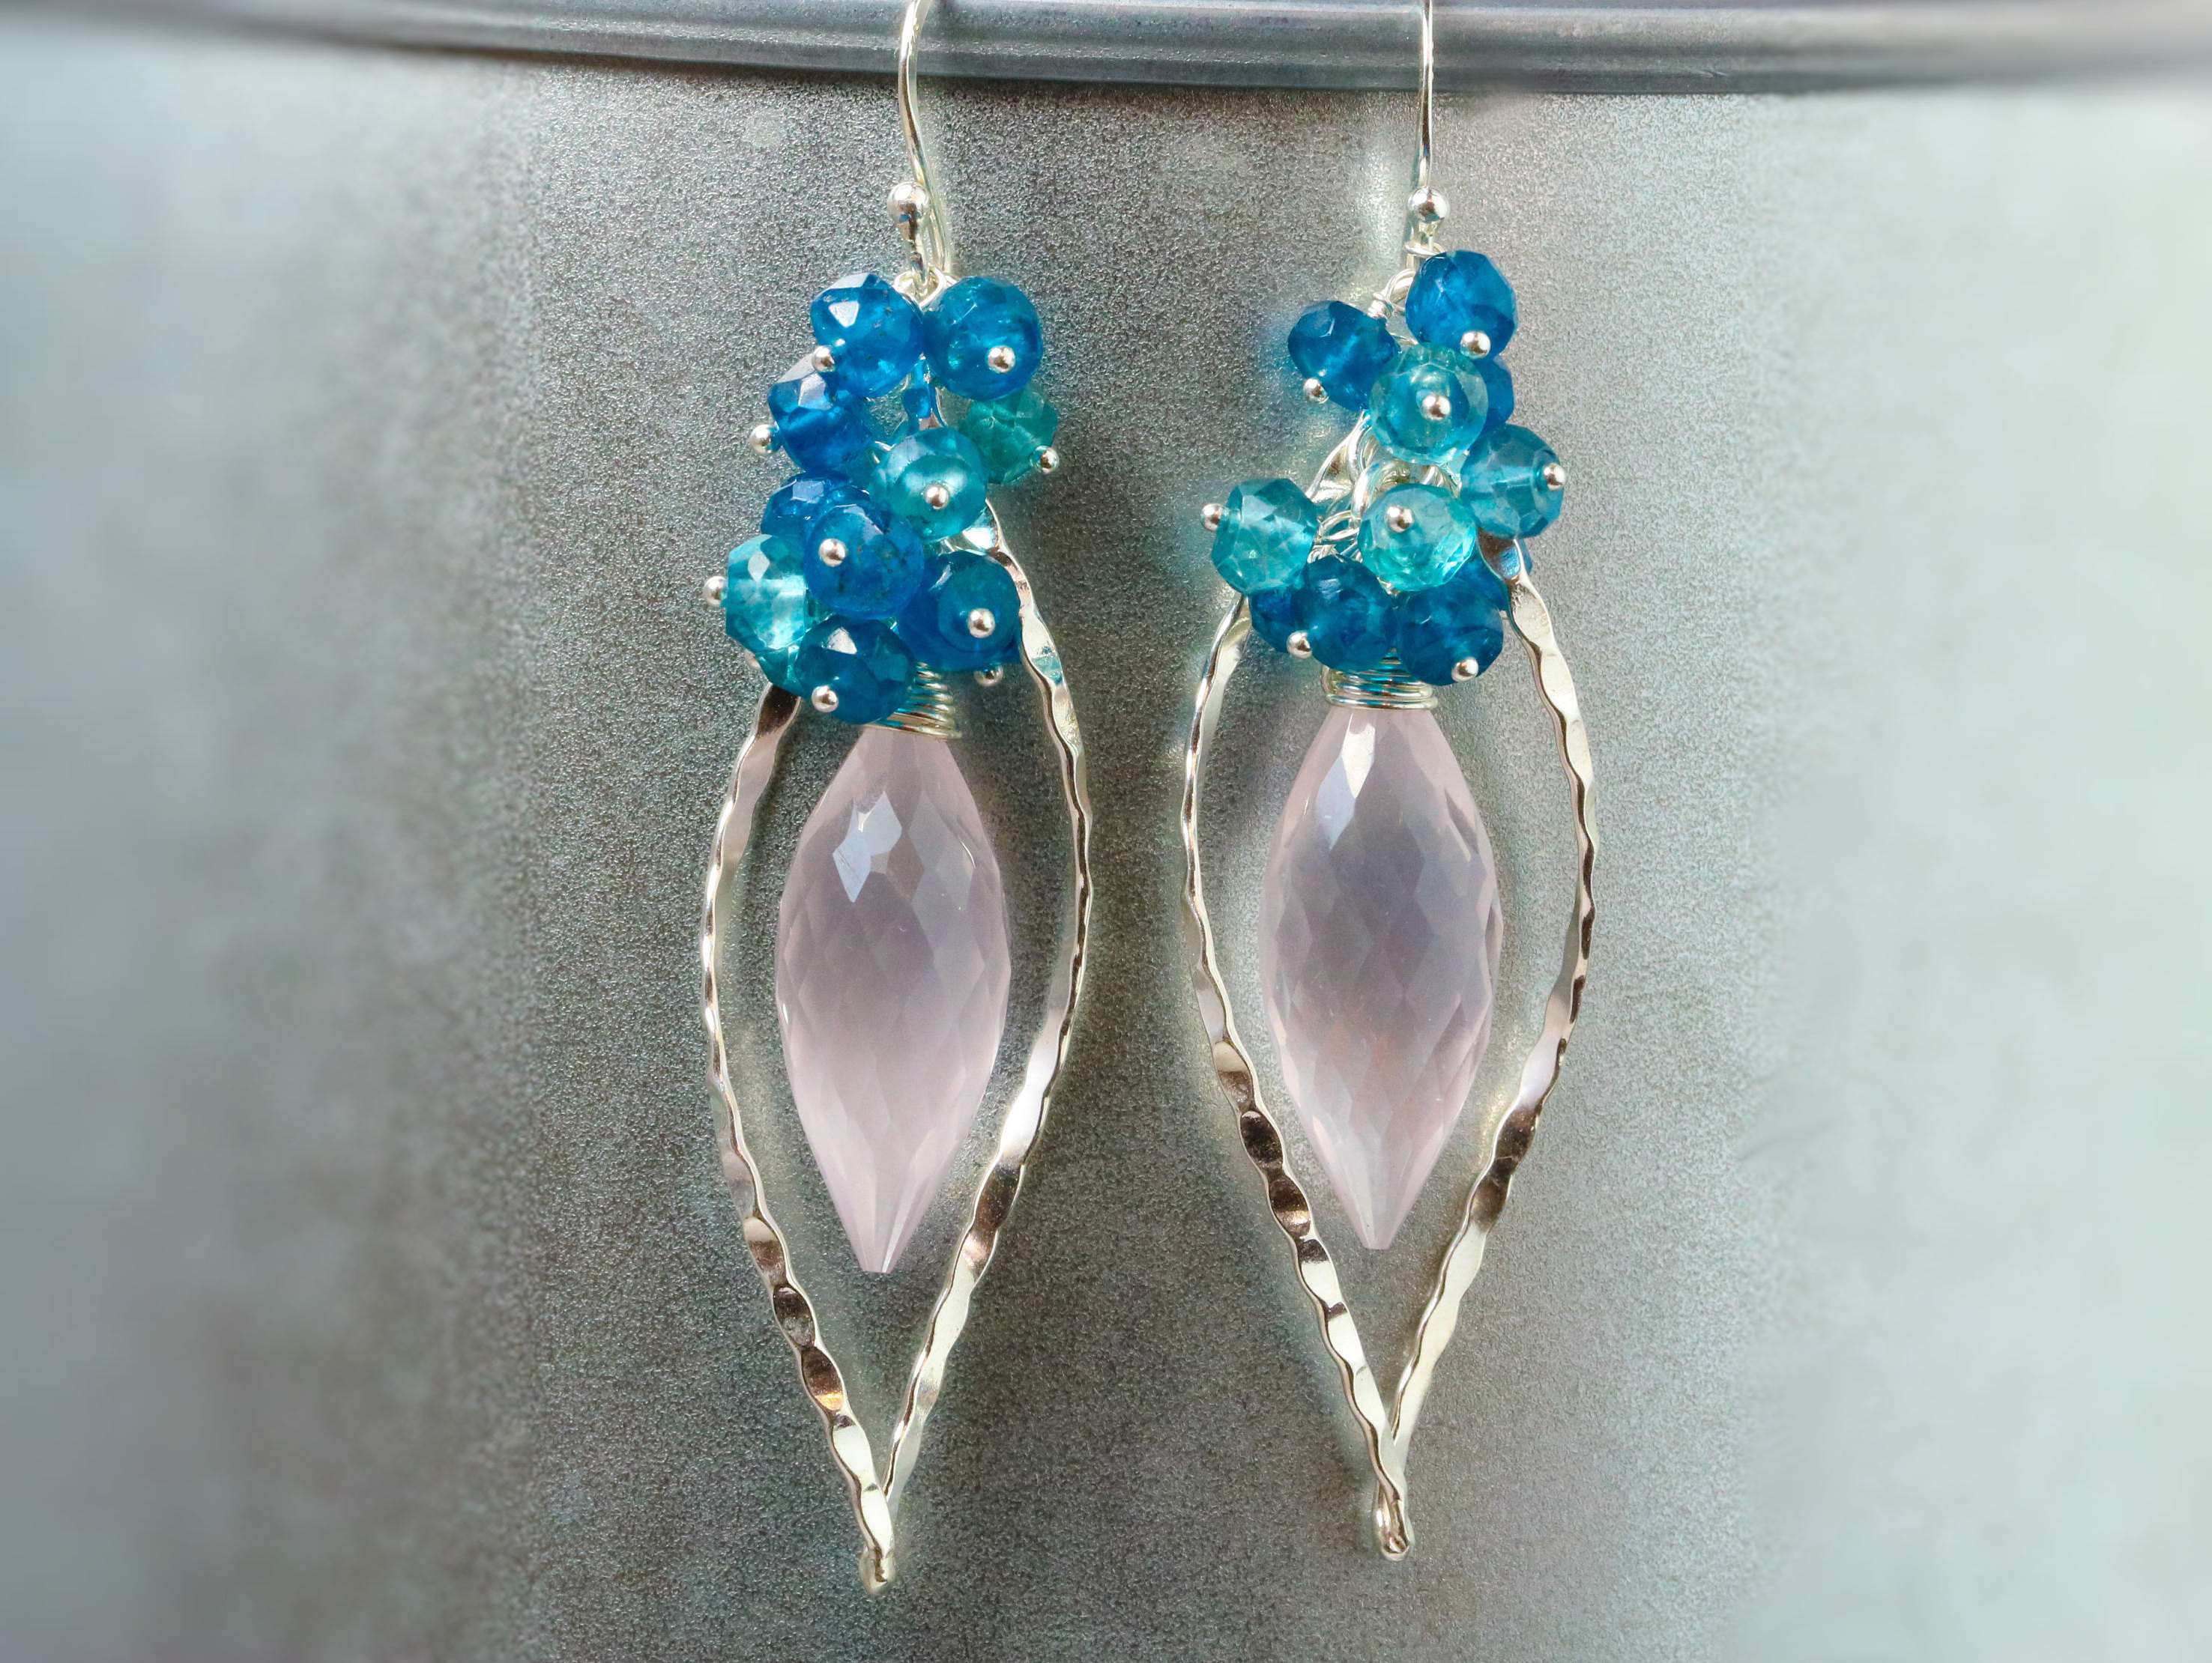 earrings kyanite apatite tulip design and blue sapphires cluster the topaz gemstone